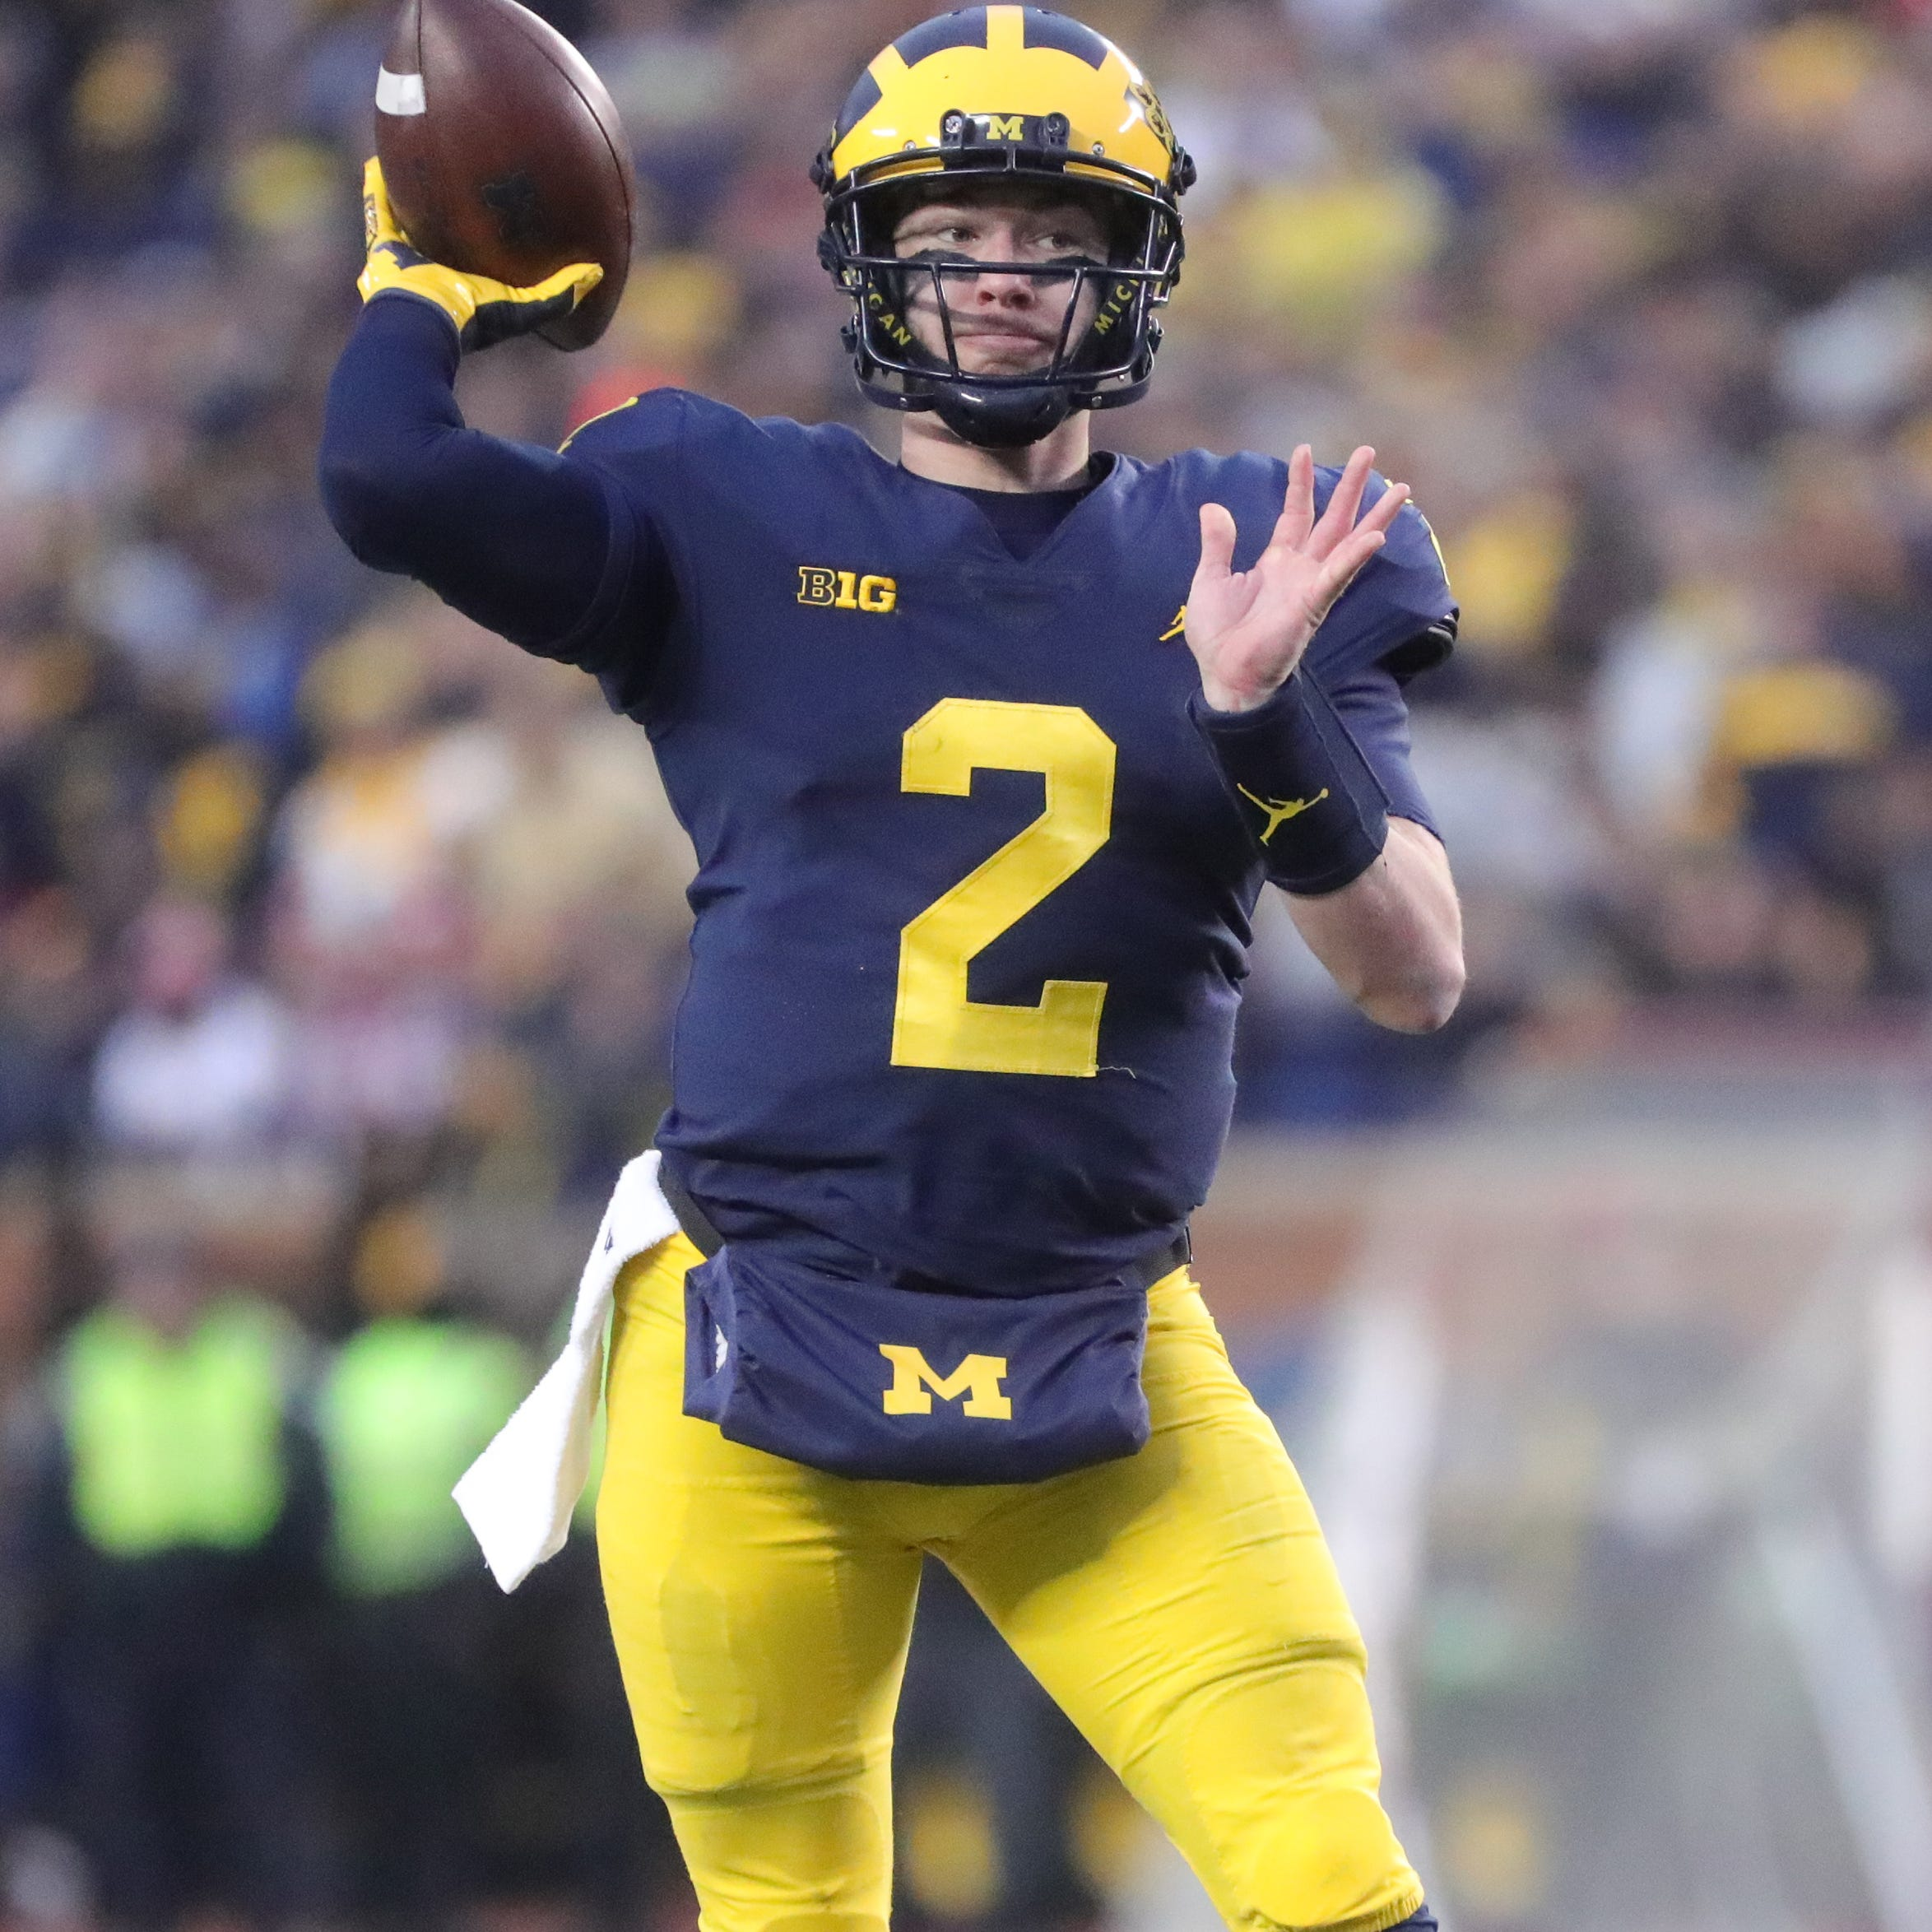 Michigan QB Shea Patterson's NFL decision an interesting one